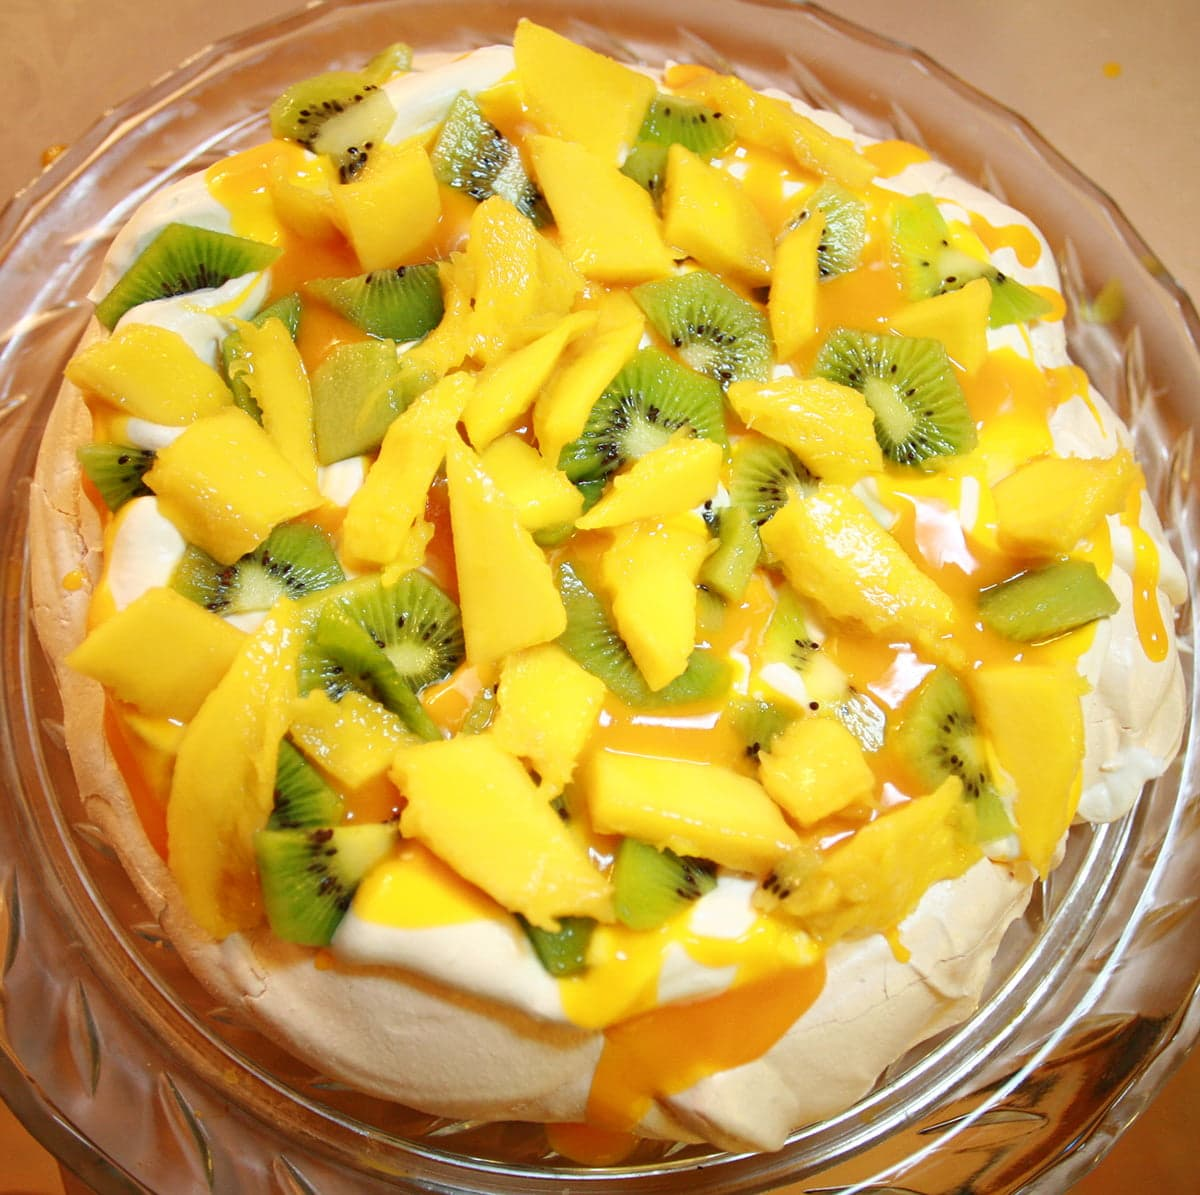 A roudn white meringue topped with whipped cream, mango slices, kiwi slices, and mango sauce.